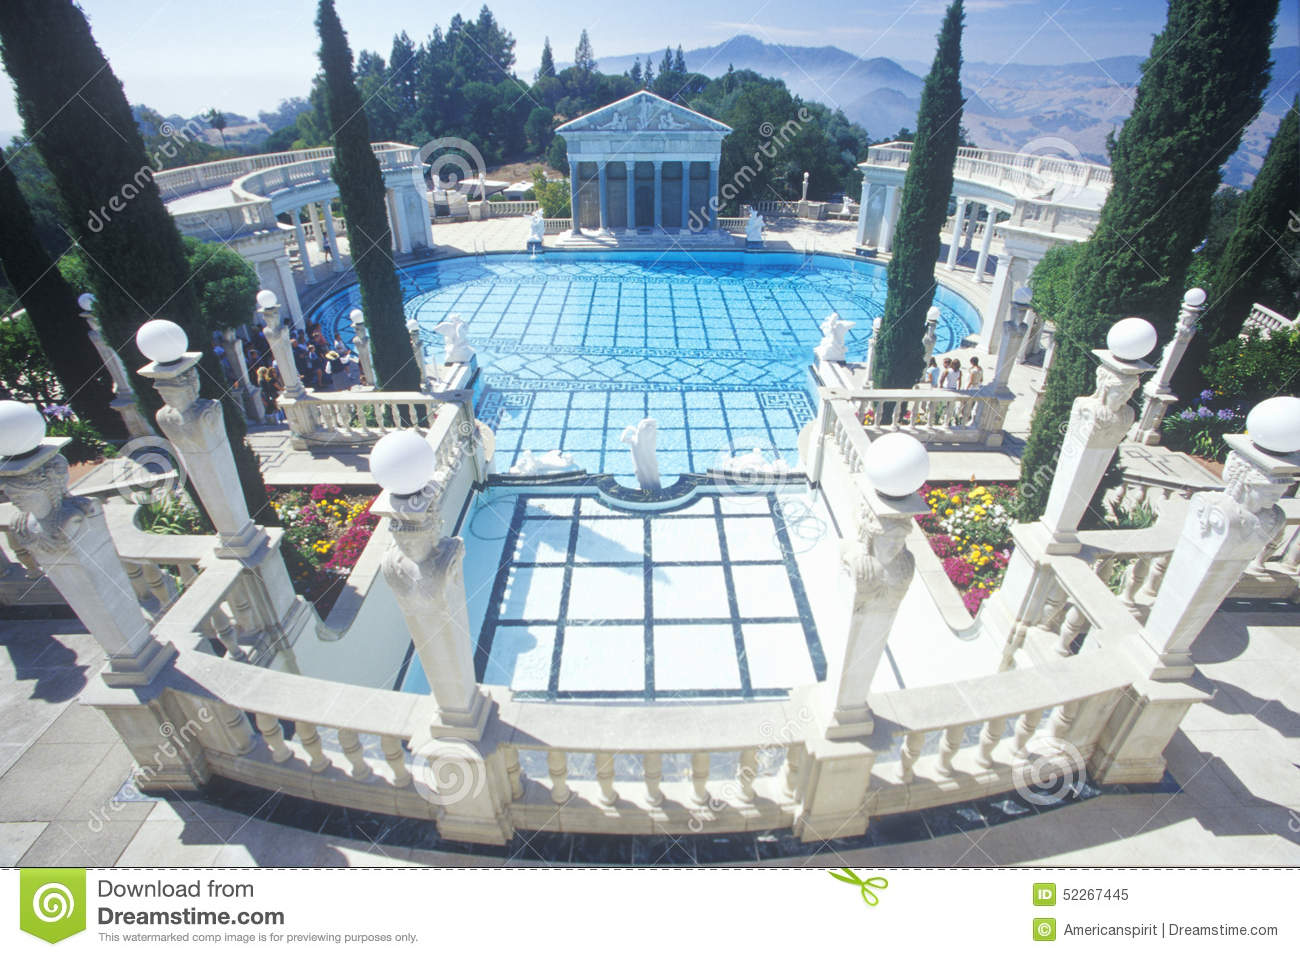 Neptune Pool at Hearst Castle, San Simeon, Central Coast, California